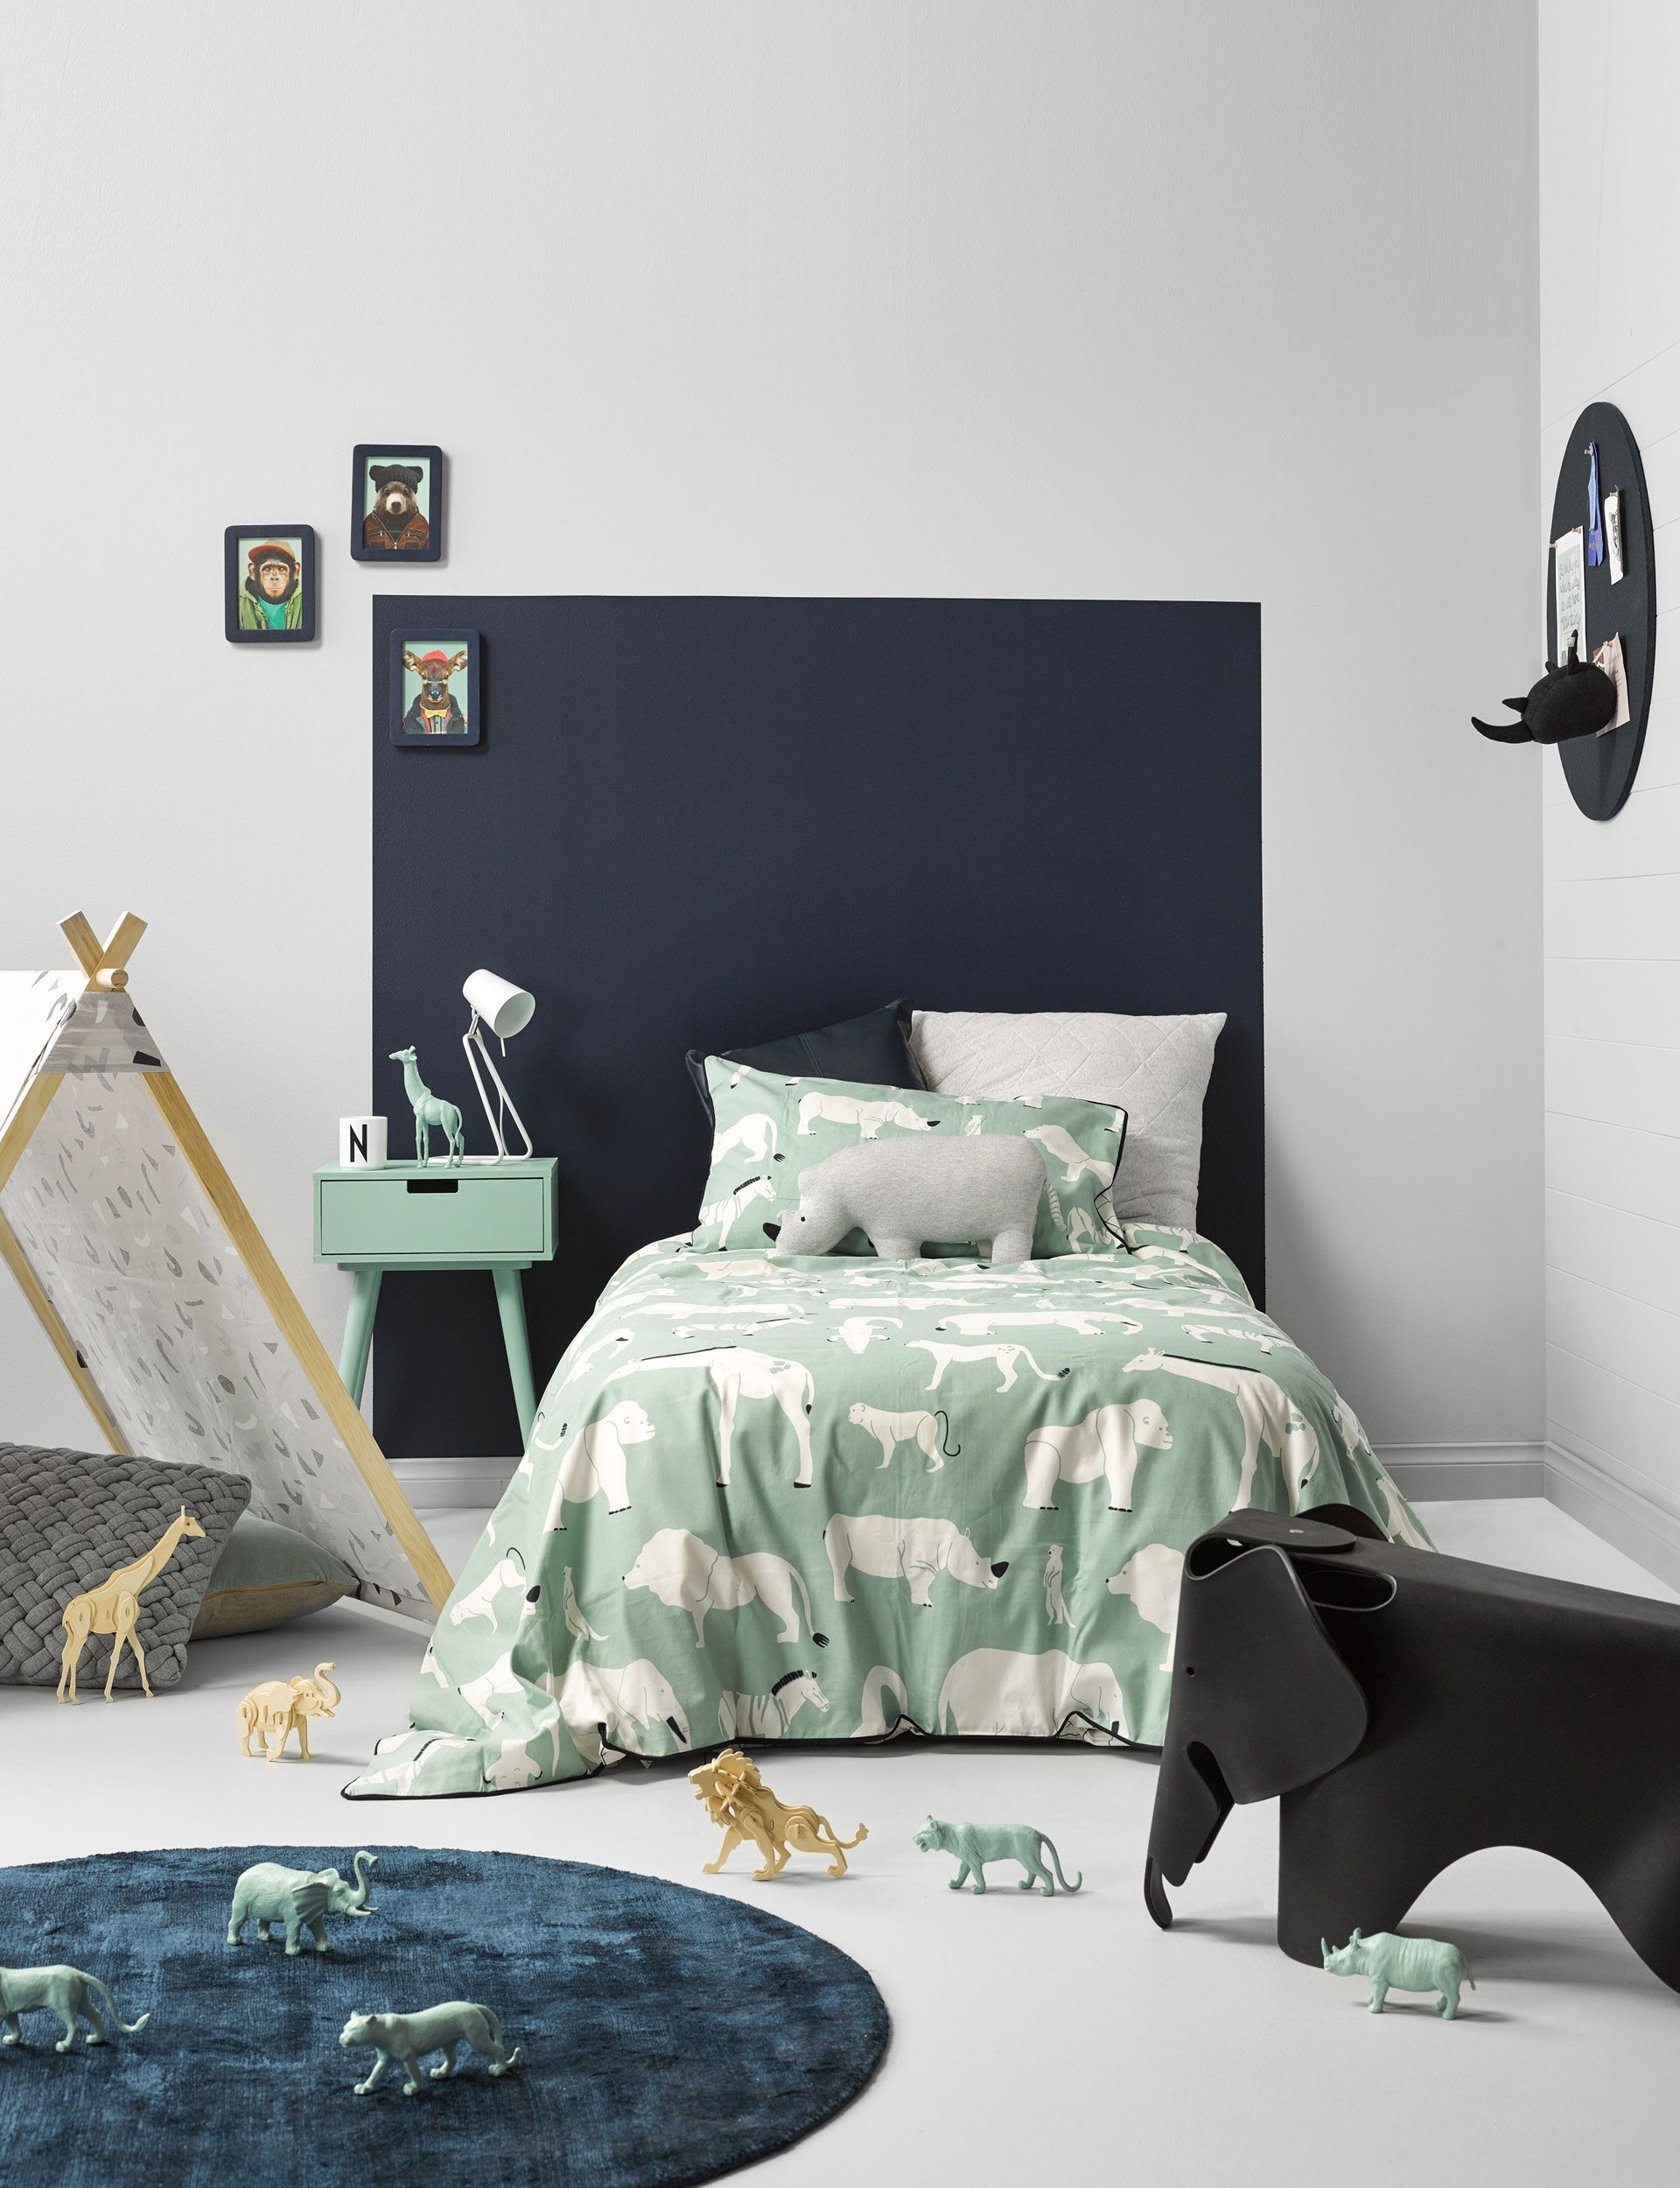 How to add cool style to your child's room with a painted headboard #childroom